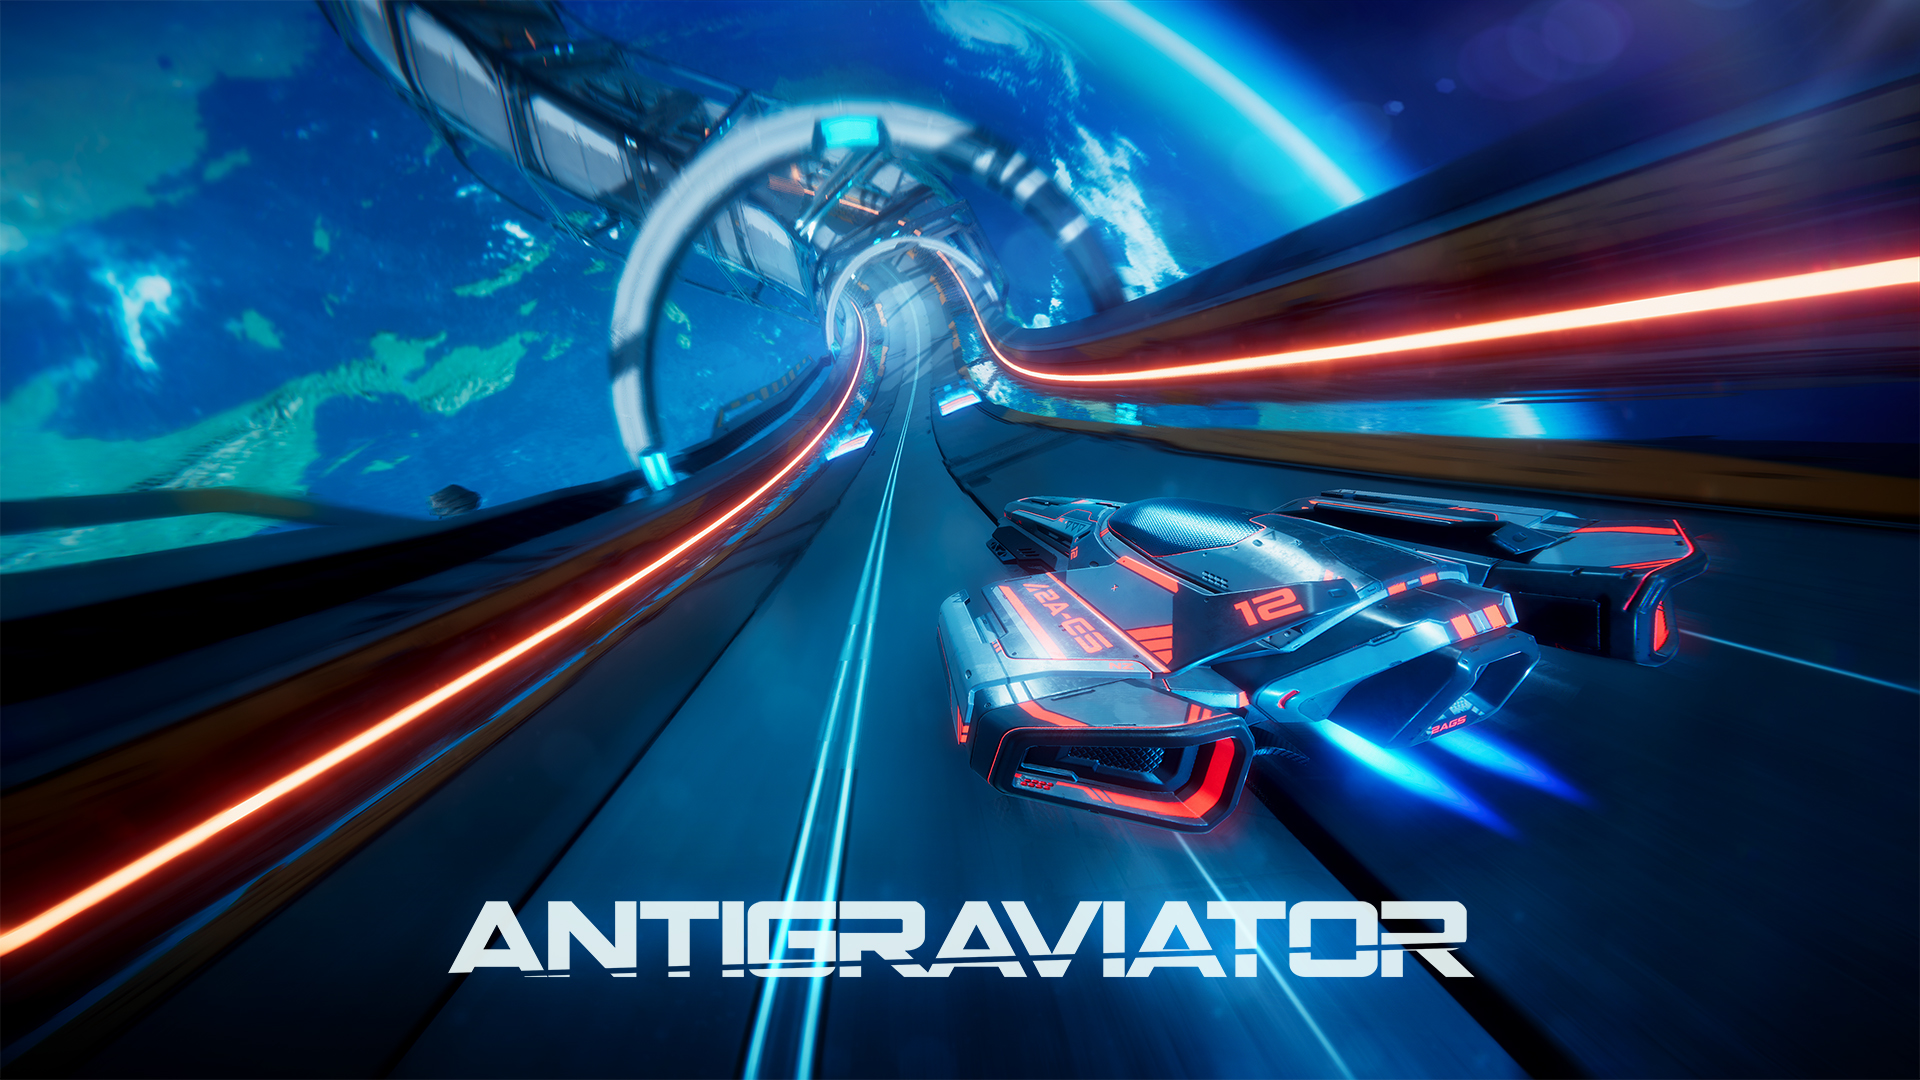 Antigraviator_PromotionalImage1080